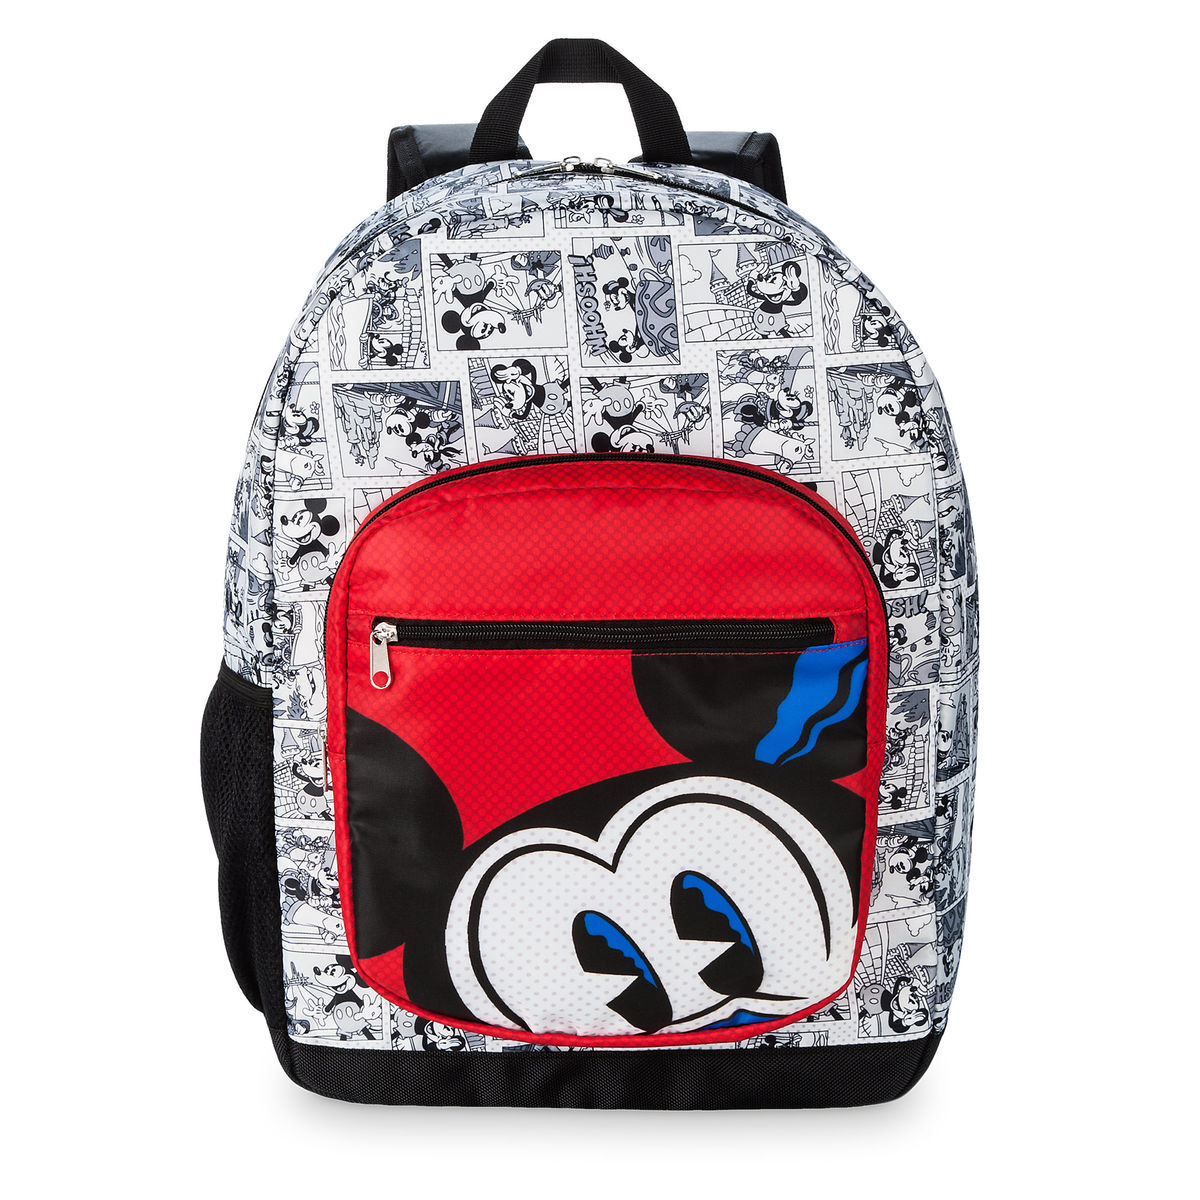 Product Image of Mickey Mouse Comic Backpack   1 cc3bc14fdbd7f